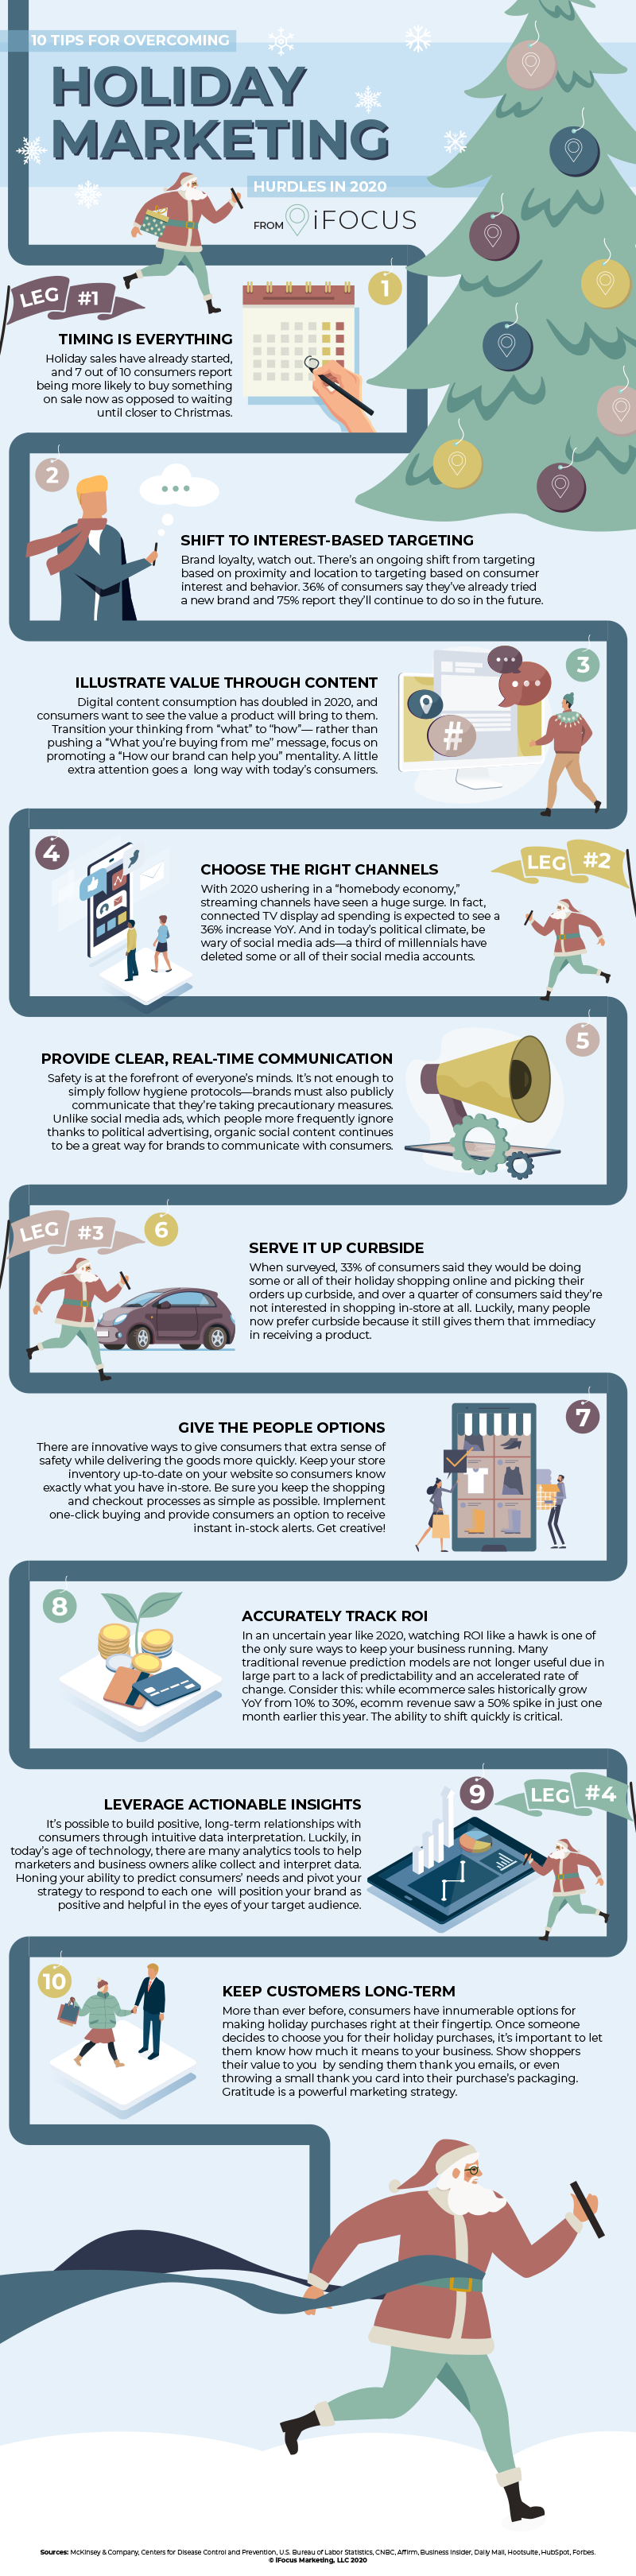 2020 holiday marketing tips infographic